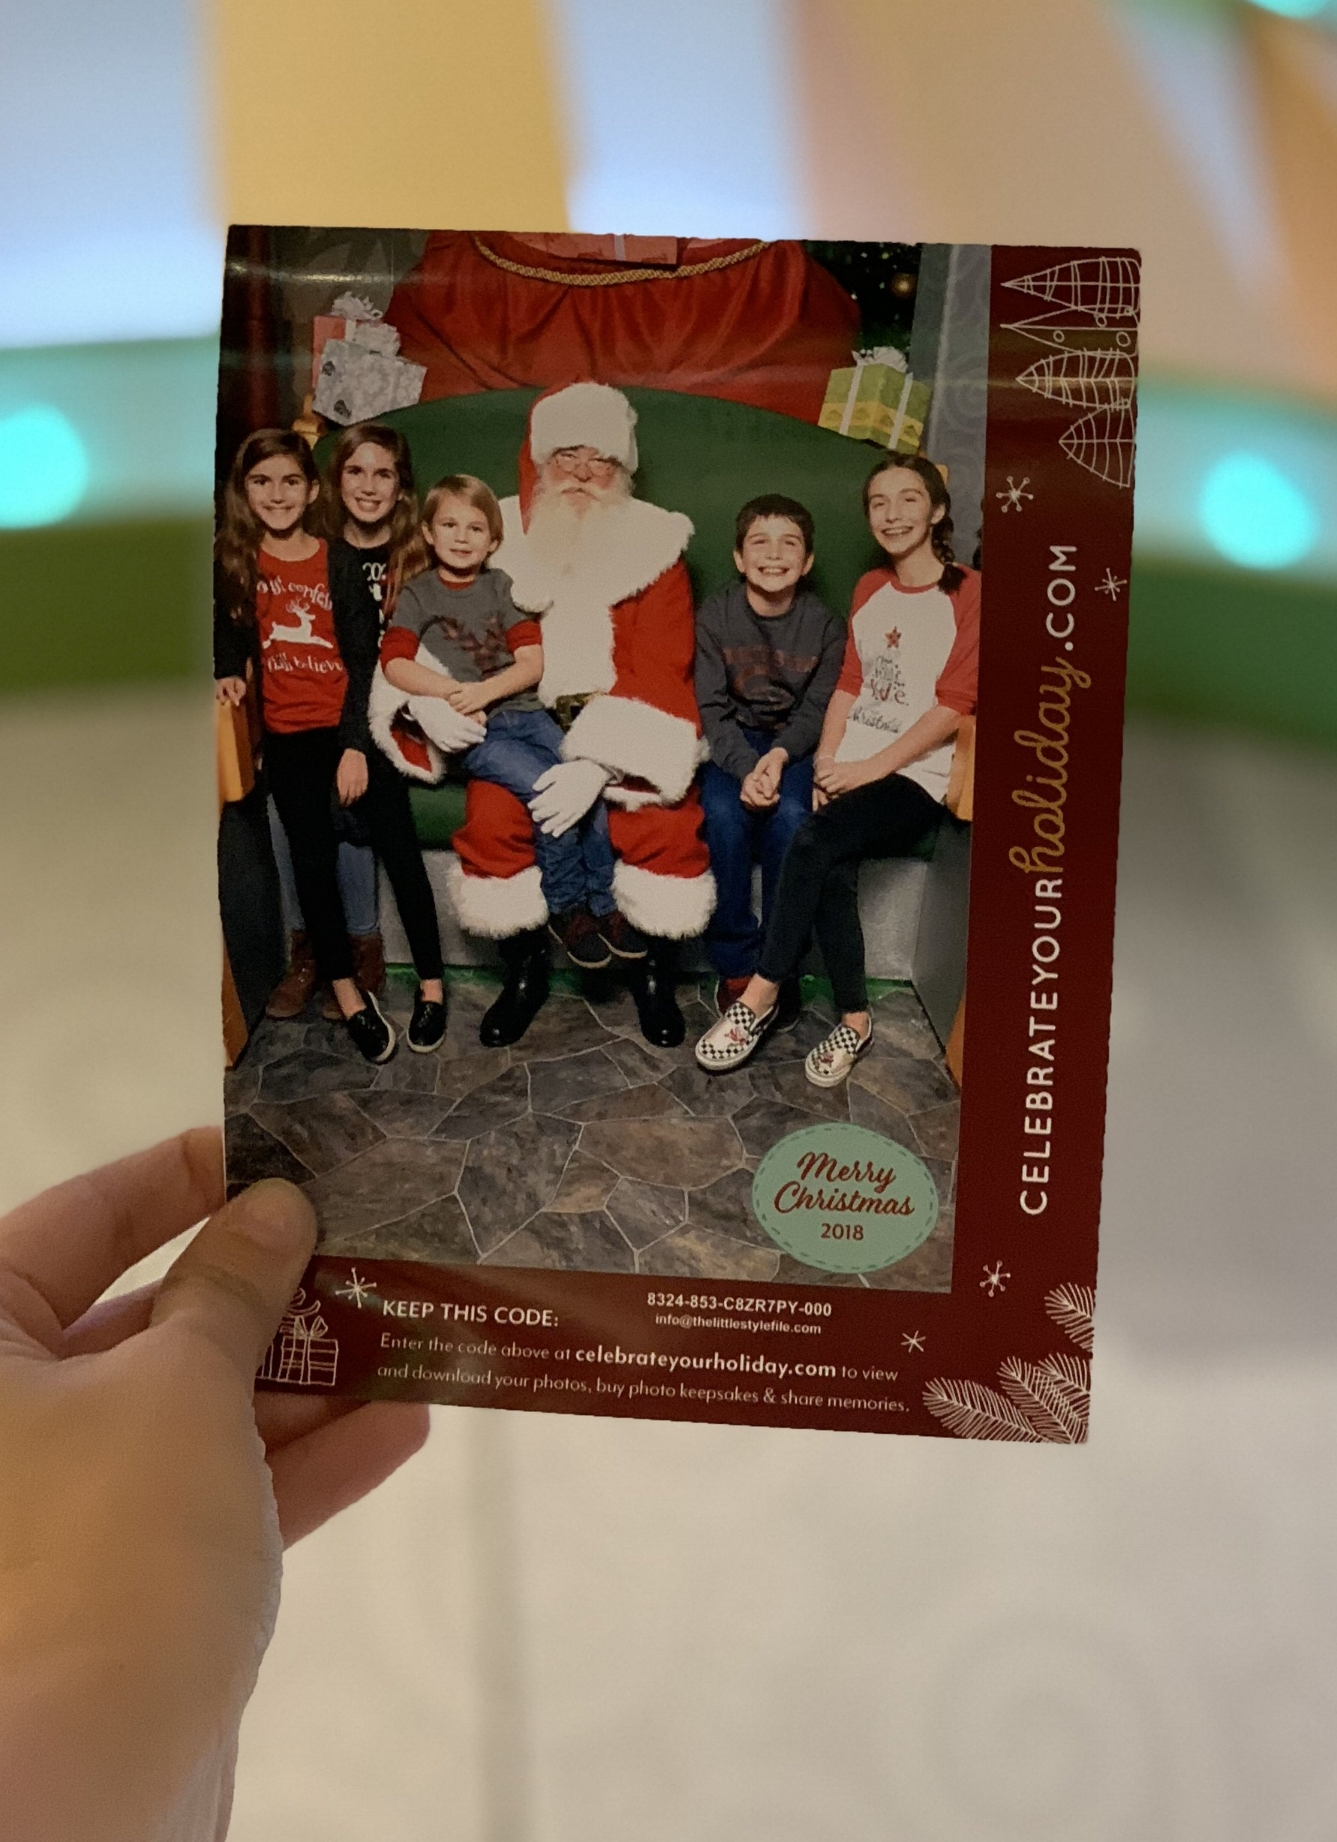 best place to visit santa in chicago